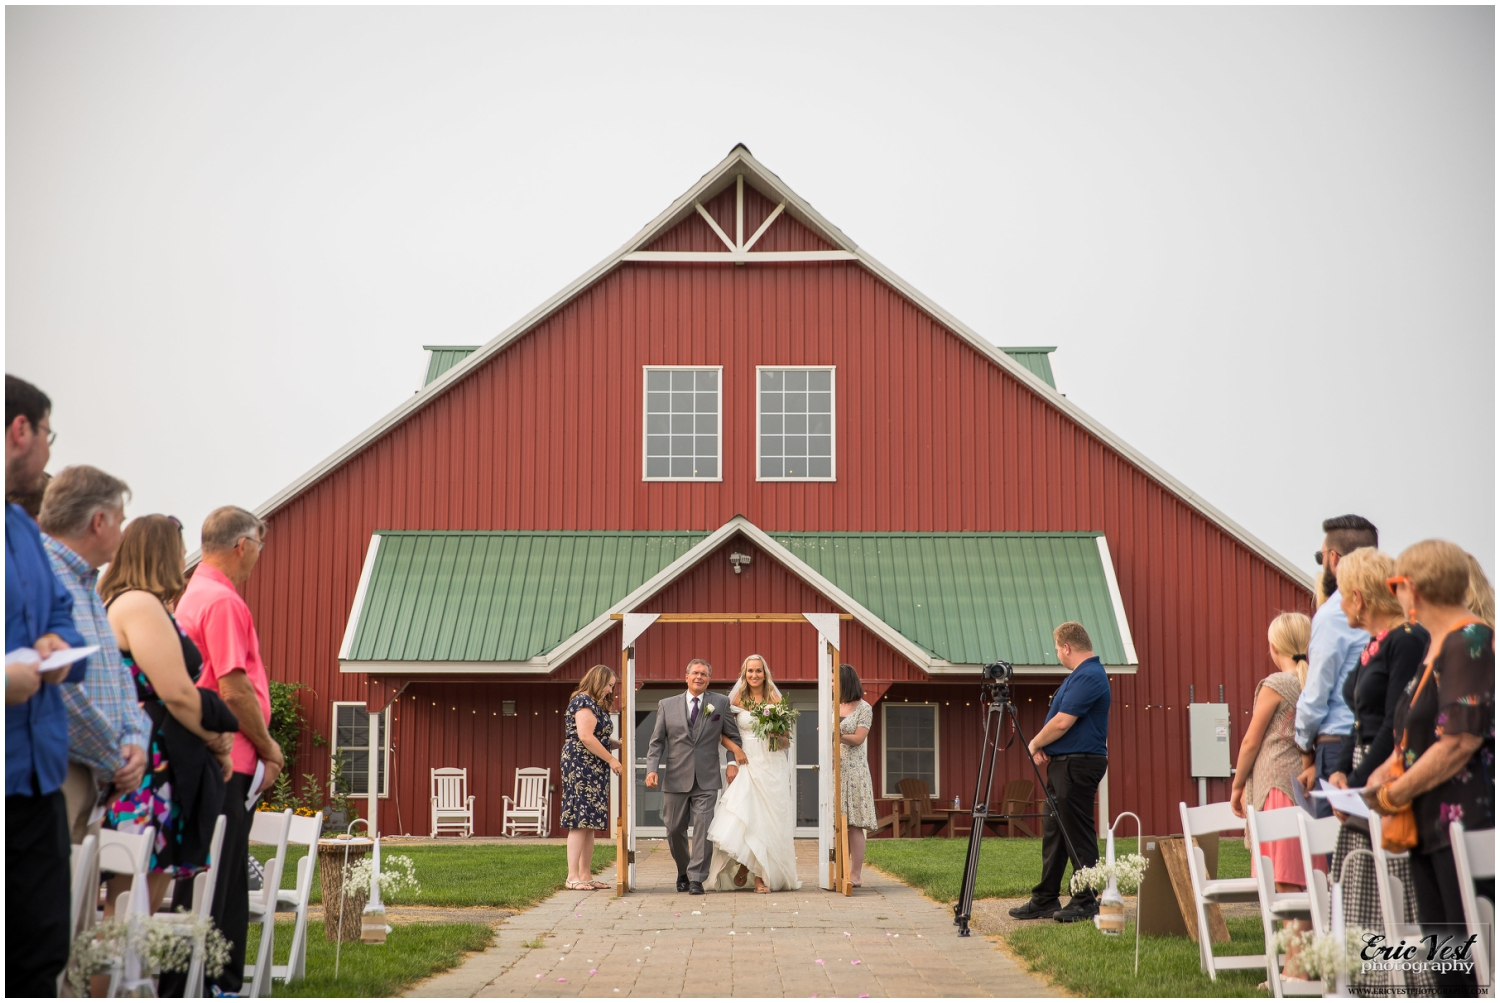 Chaska MN wedding venue - The Outpost Center_0473.jpg